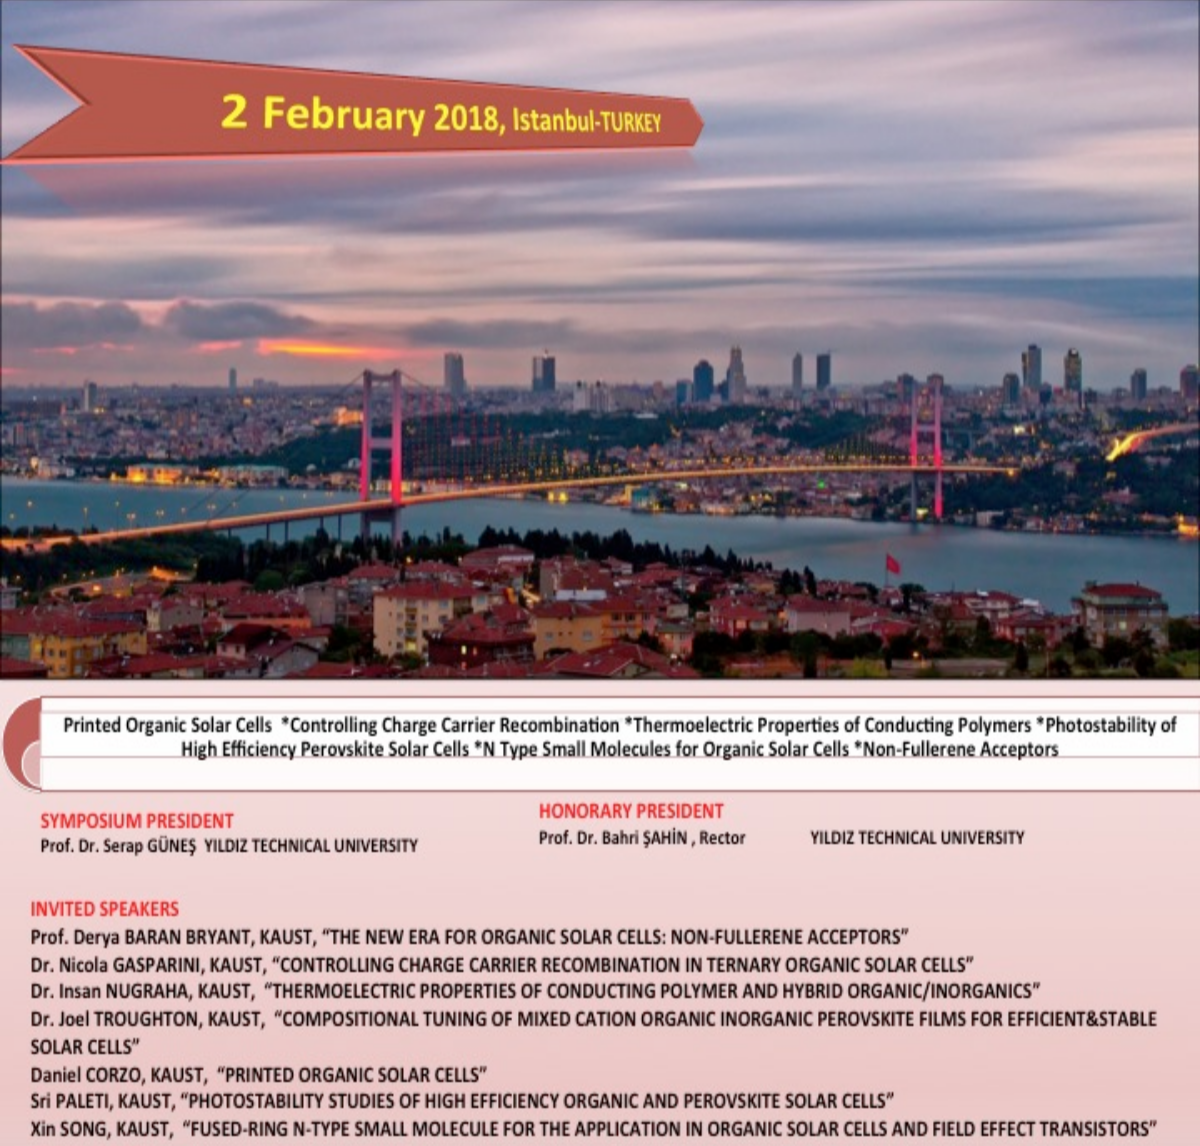 Symposium on Recent Advances on Organic/Hybrid Electronics in Istanbul - 2/2/18Many OMEGA Lab members presents their latest research at the Symposium on Recent Advances on Organic/Hybrid Electronics.